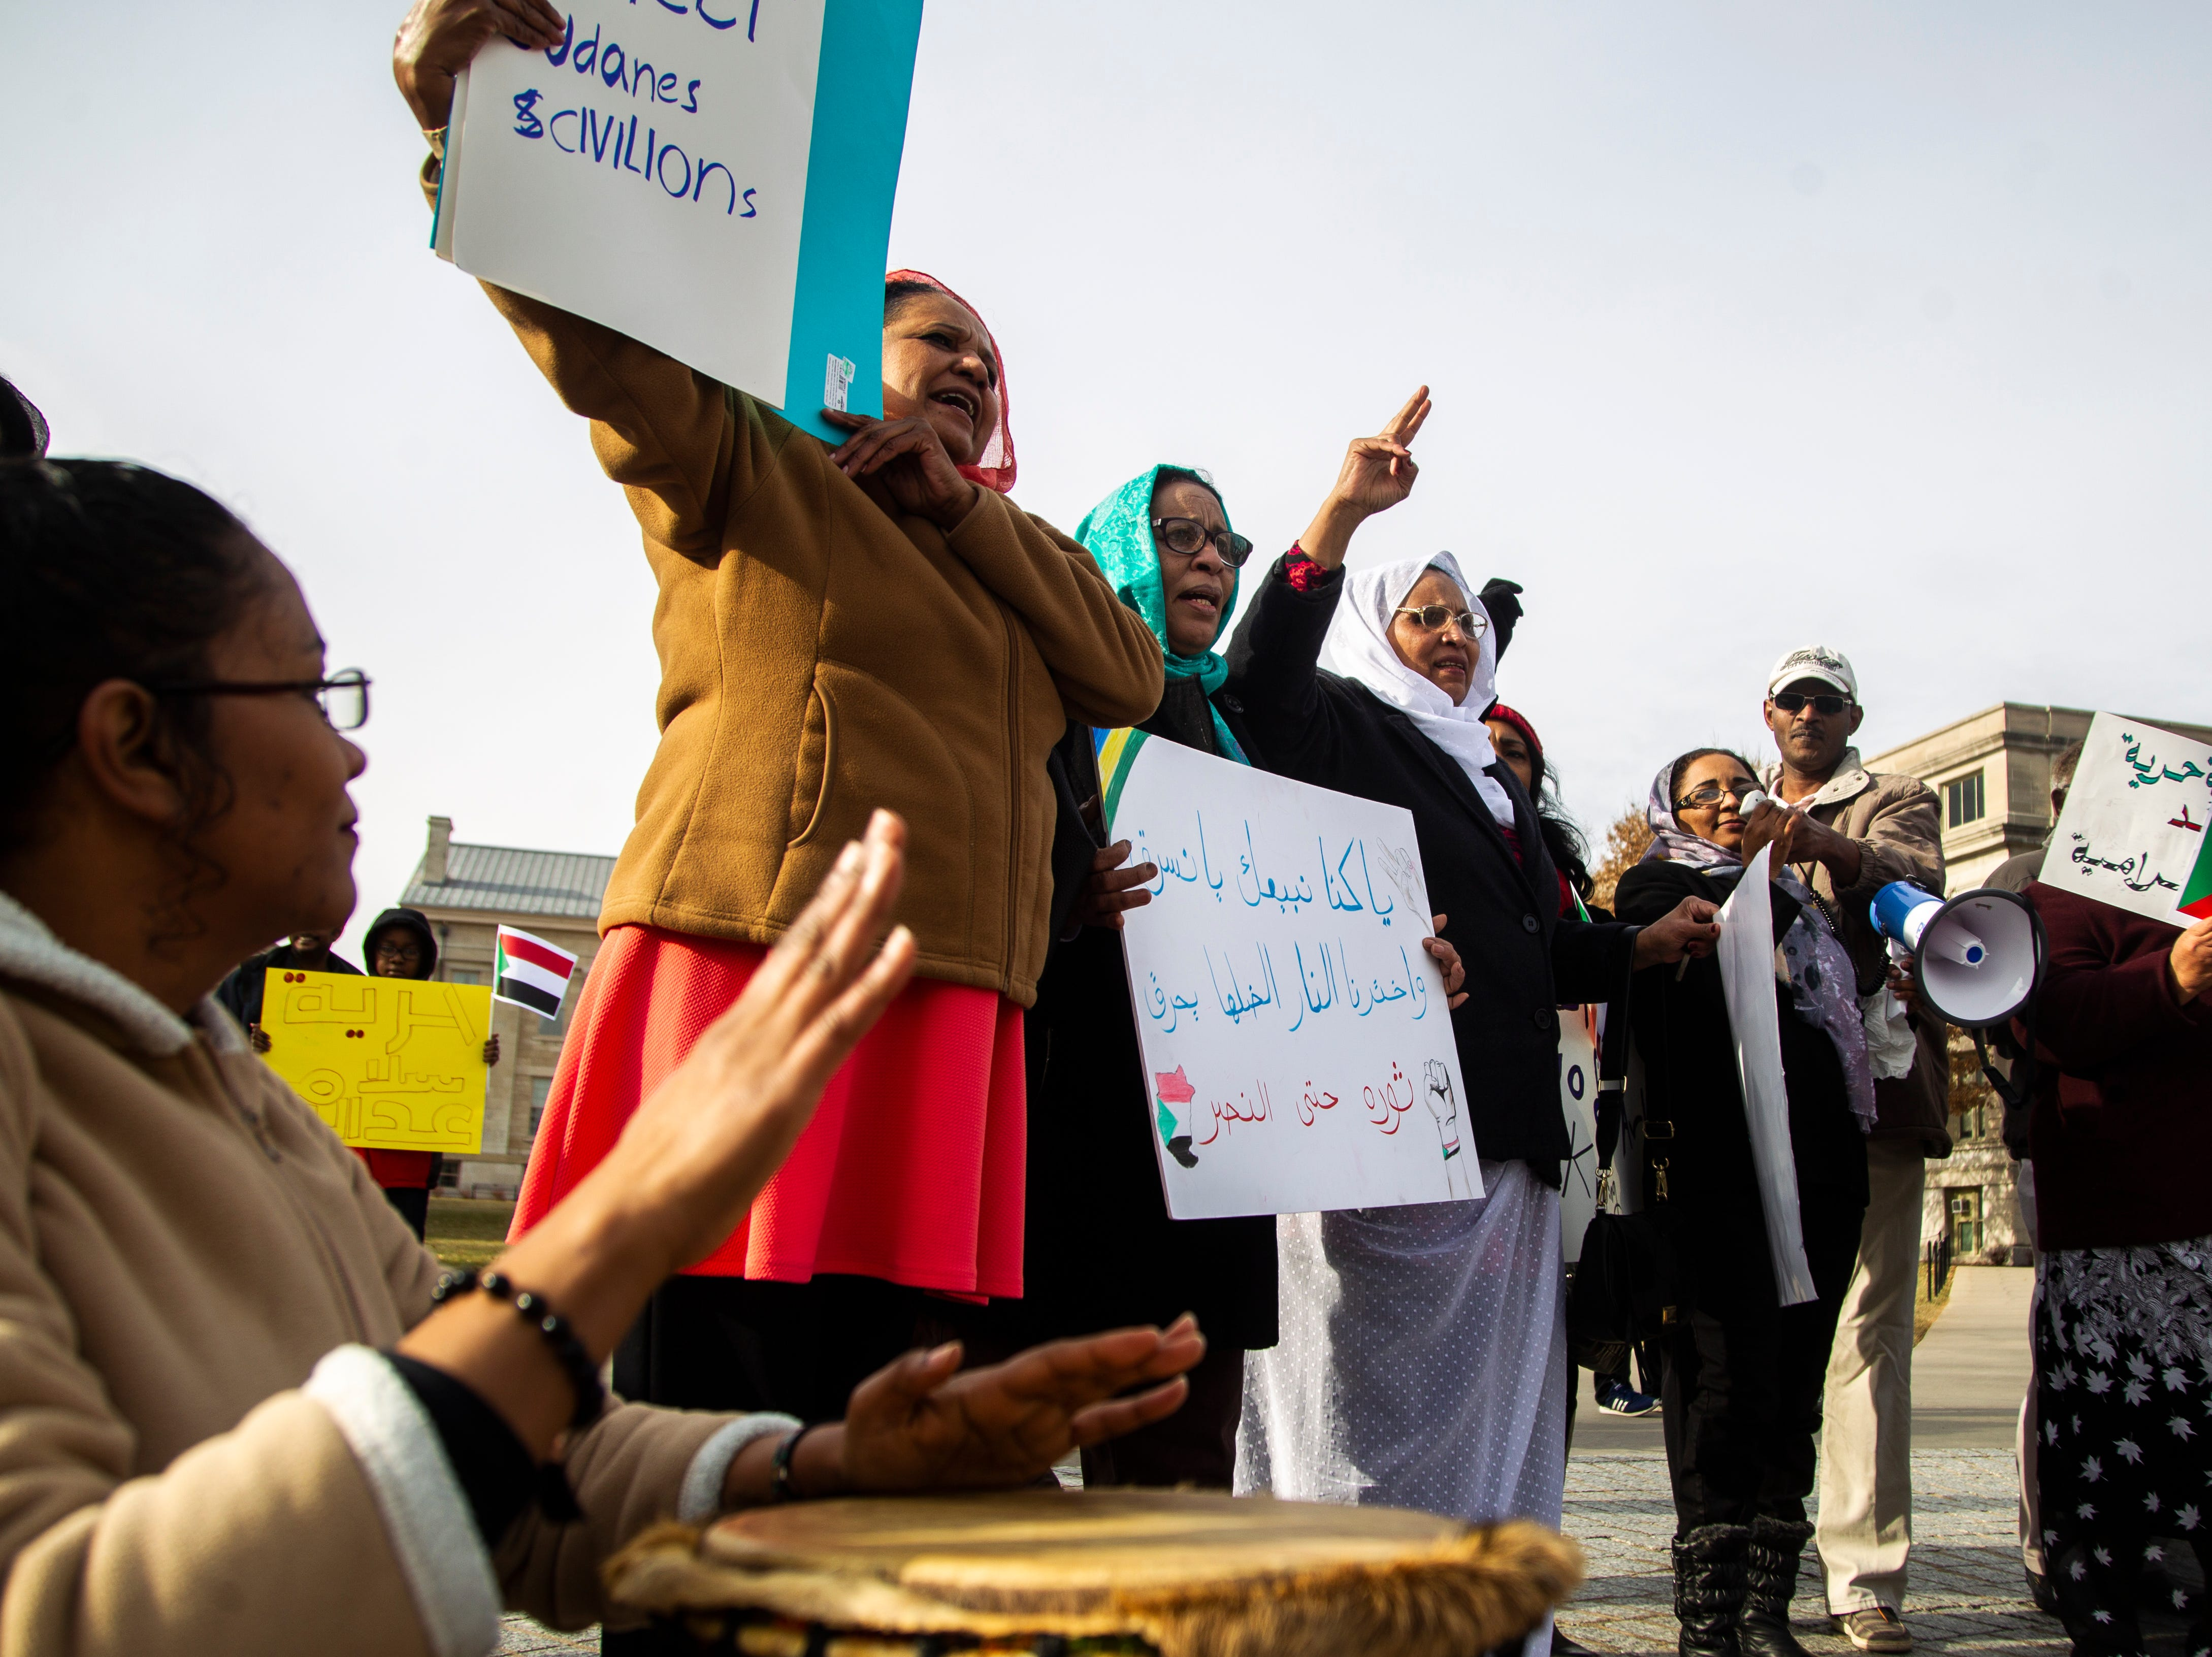 Rania Selimau beats on a drum while Sudanese members of the Iowa City community chant during a peaceful protest in opposition to the killings in Sudan on Monday, Dec. 24, 2018, in downtown Iowa City. They chanted in Arabic about their opposition to Sudanese President Omar al-Bashir.